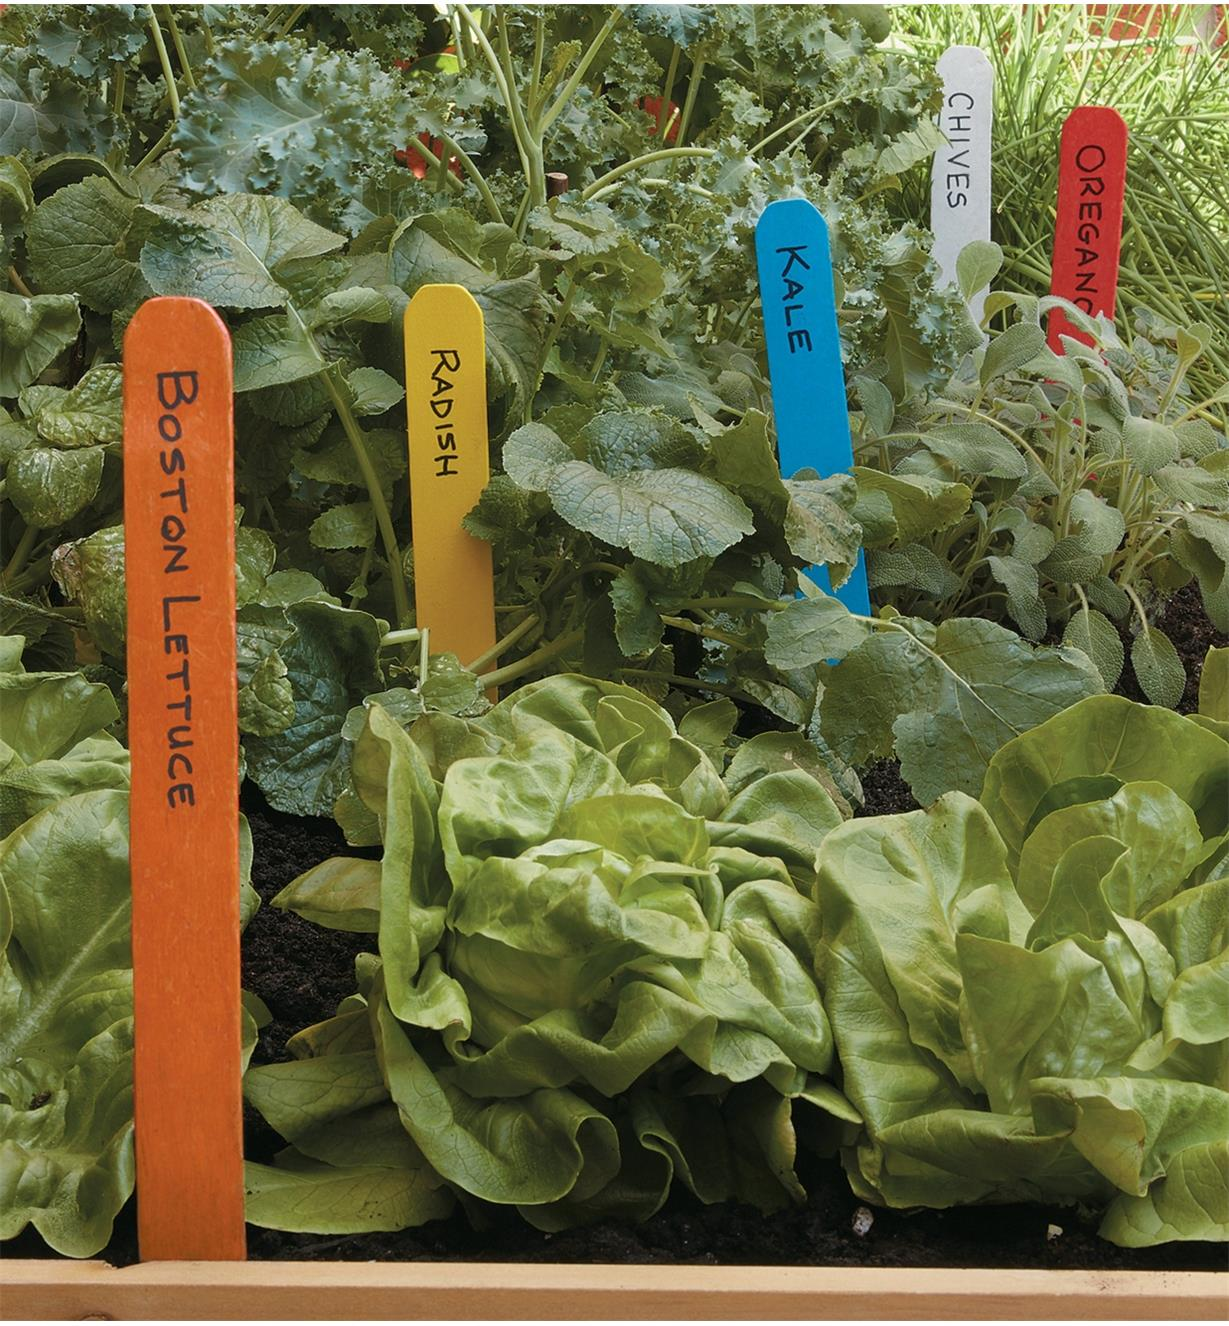 Different-colored markers with names of crops written on them inserted in a garden